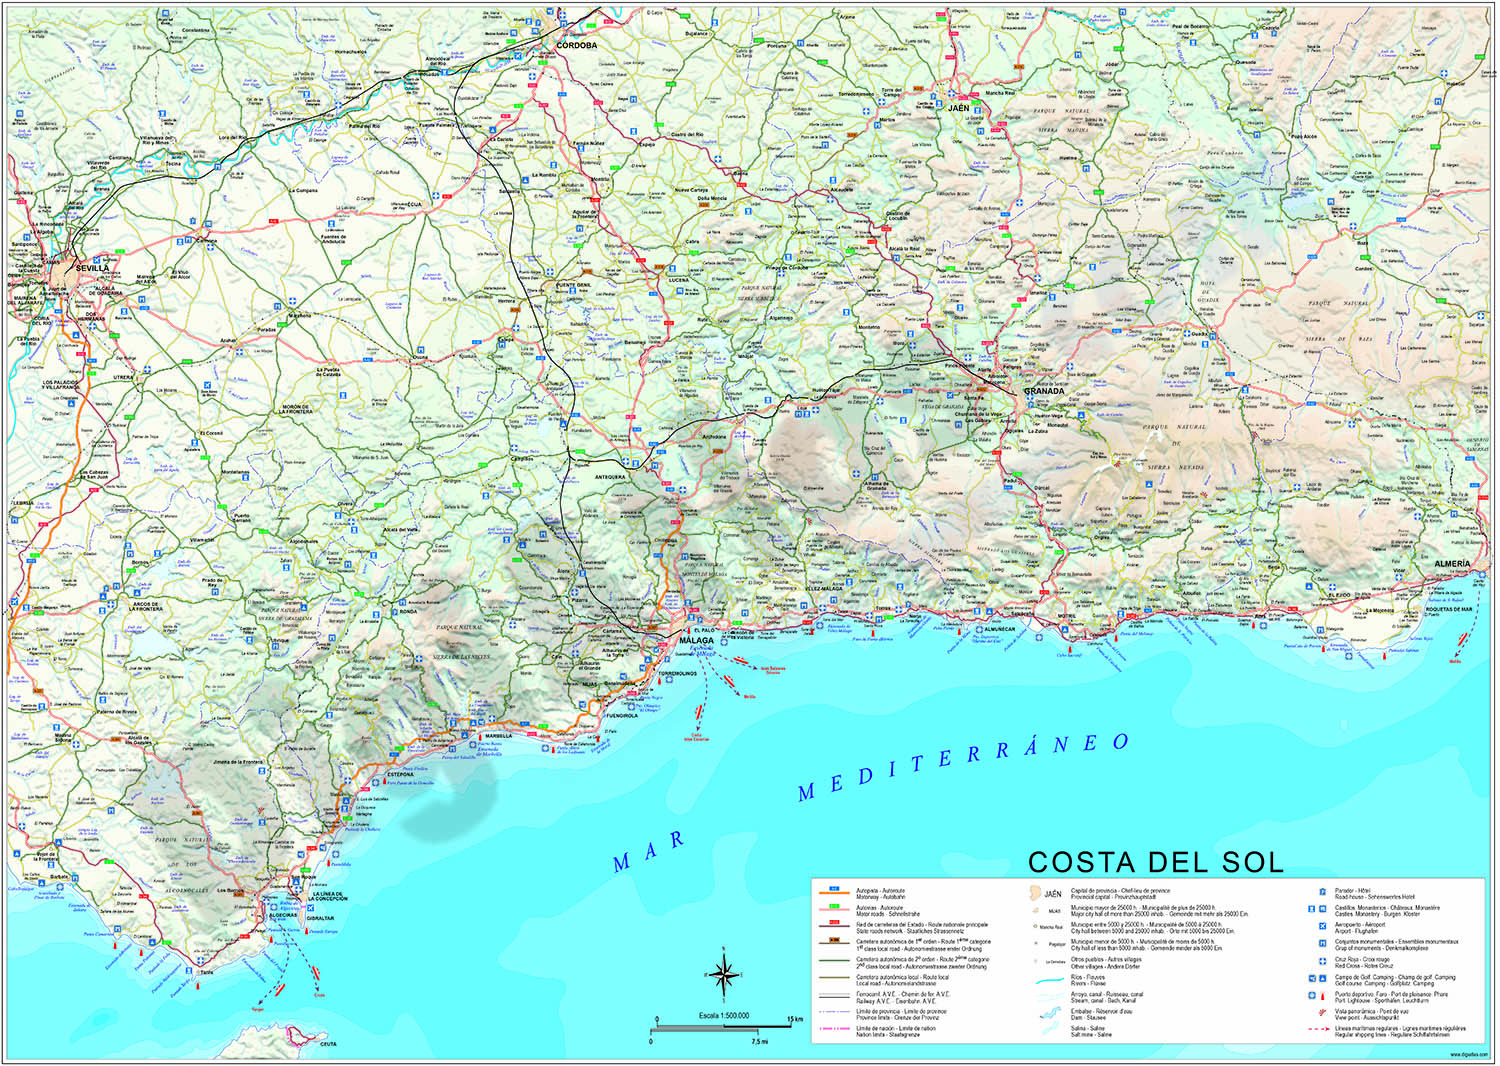 Costa del Sol political and geographical map